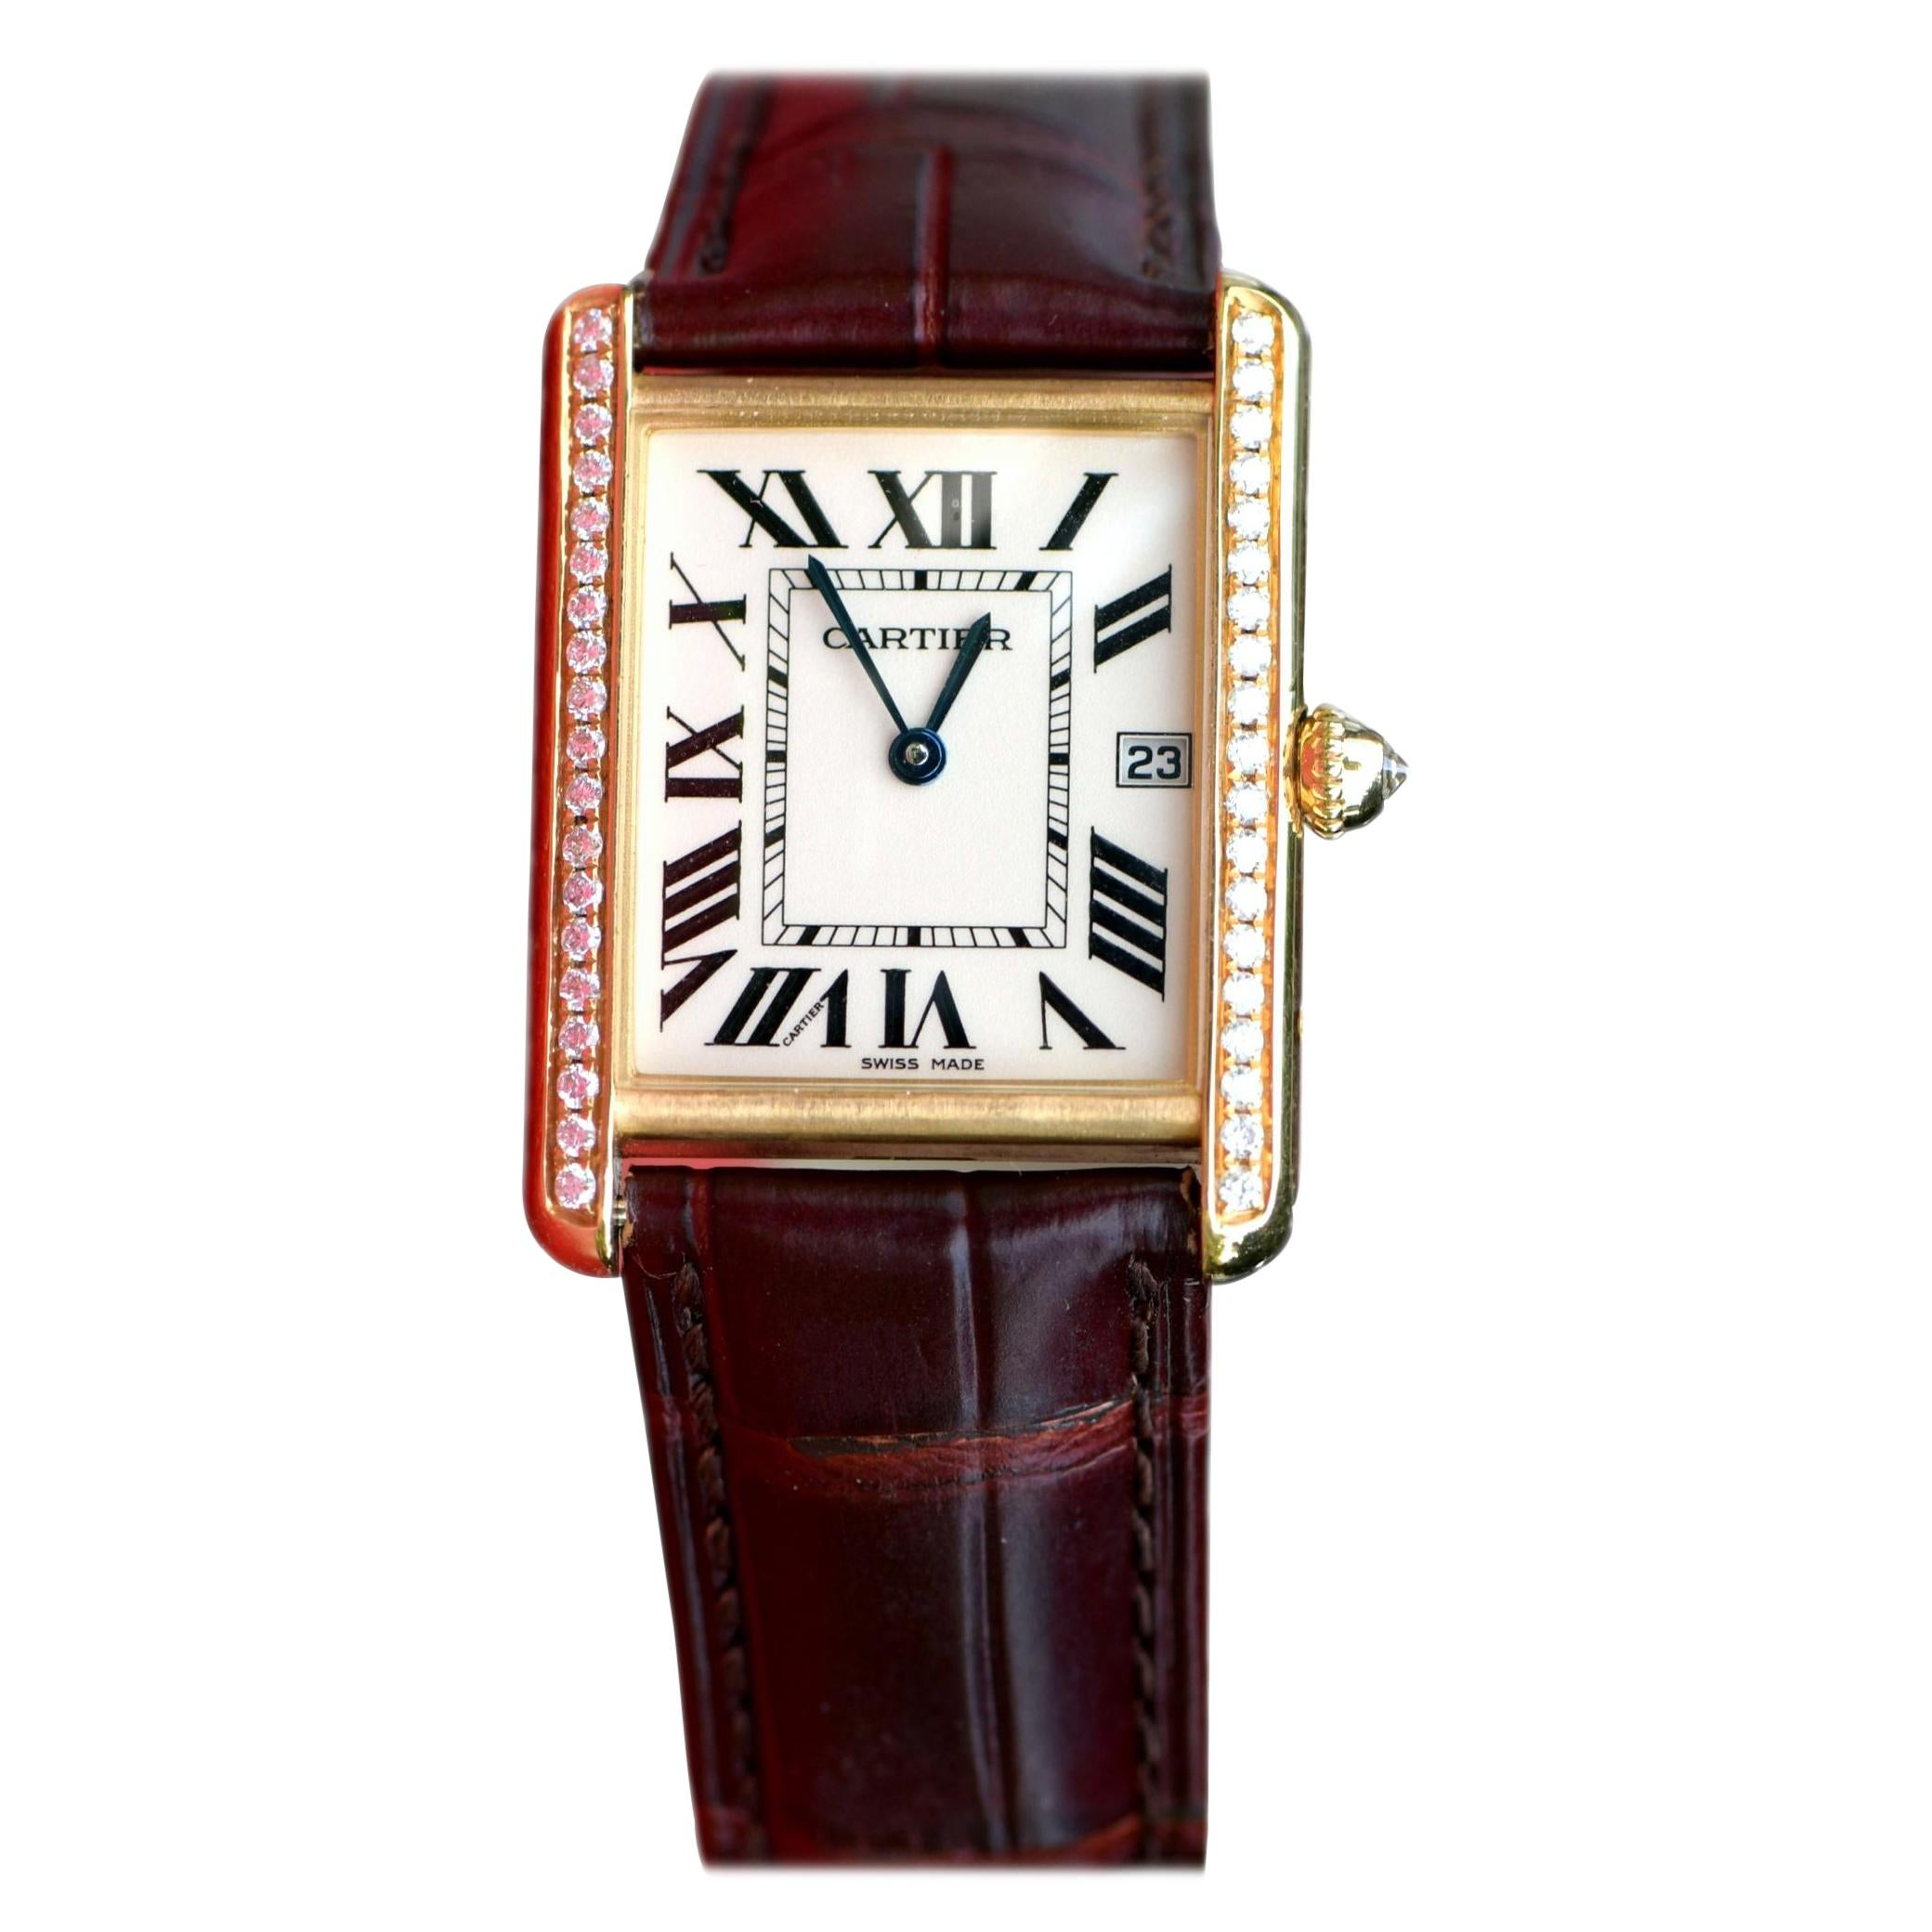 Cartier Tank Louis Large 18k Yellow Gold Leather Strap Watch W1529756